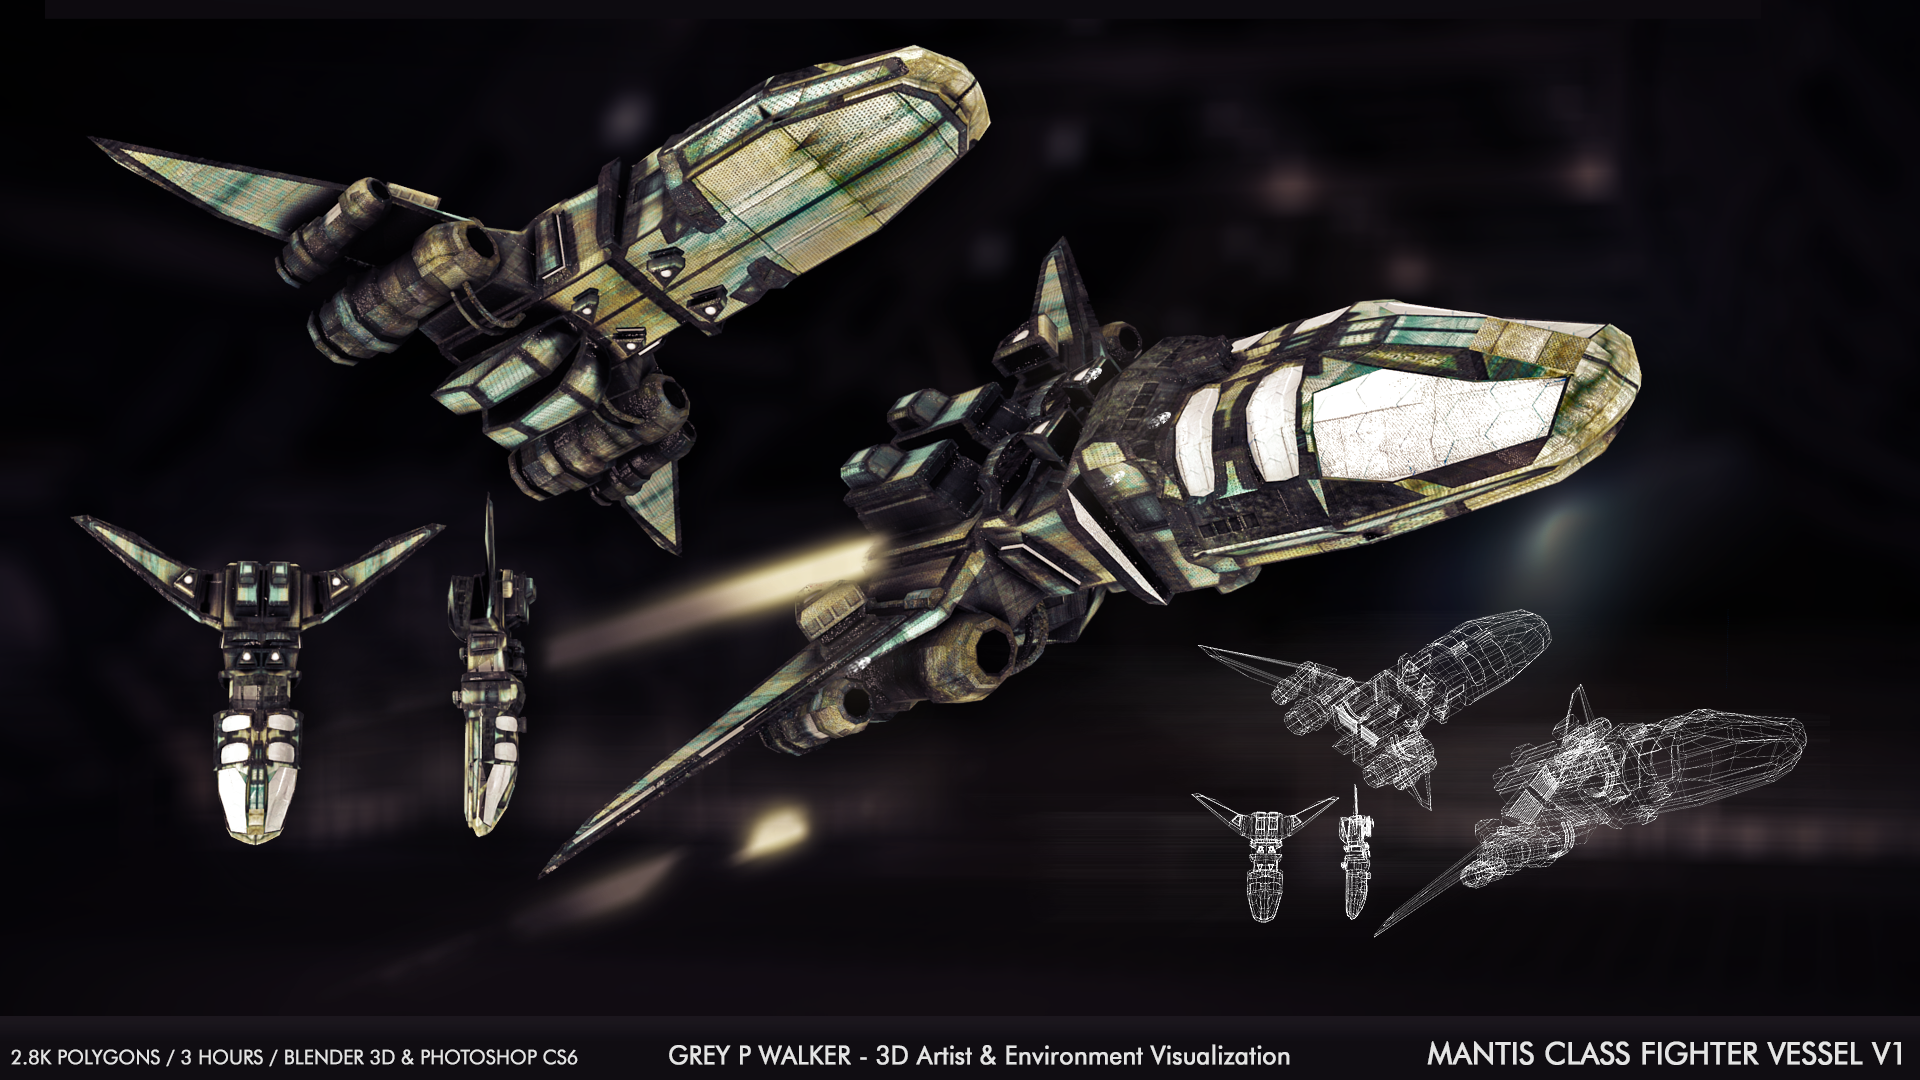 Mantis Class Fighter Vessel V1 by GreyPWalker